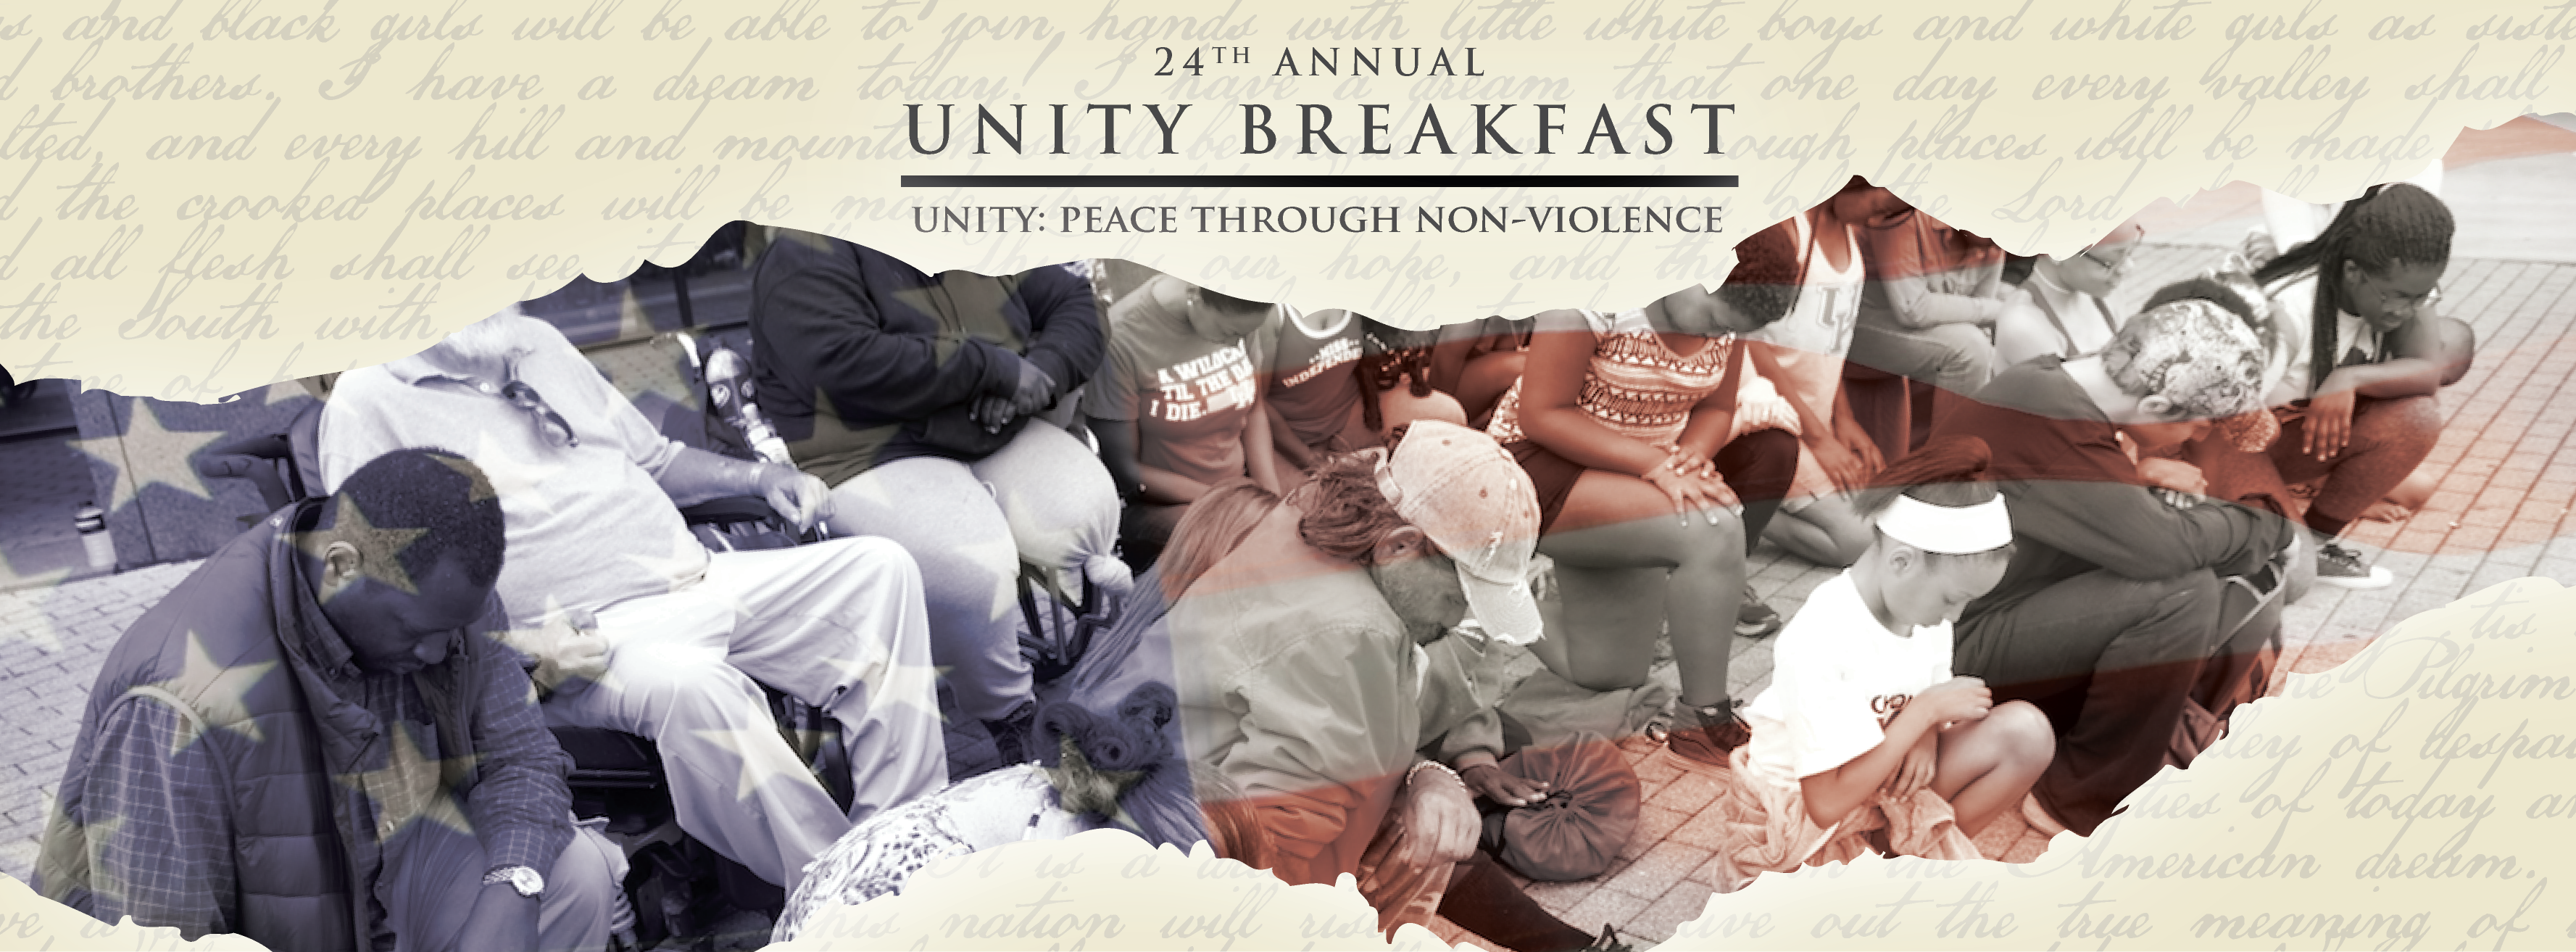 MLK Unity Breakfast 2018